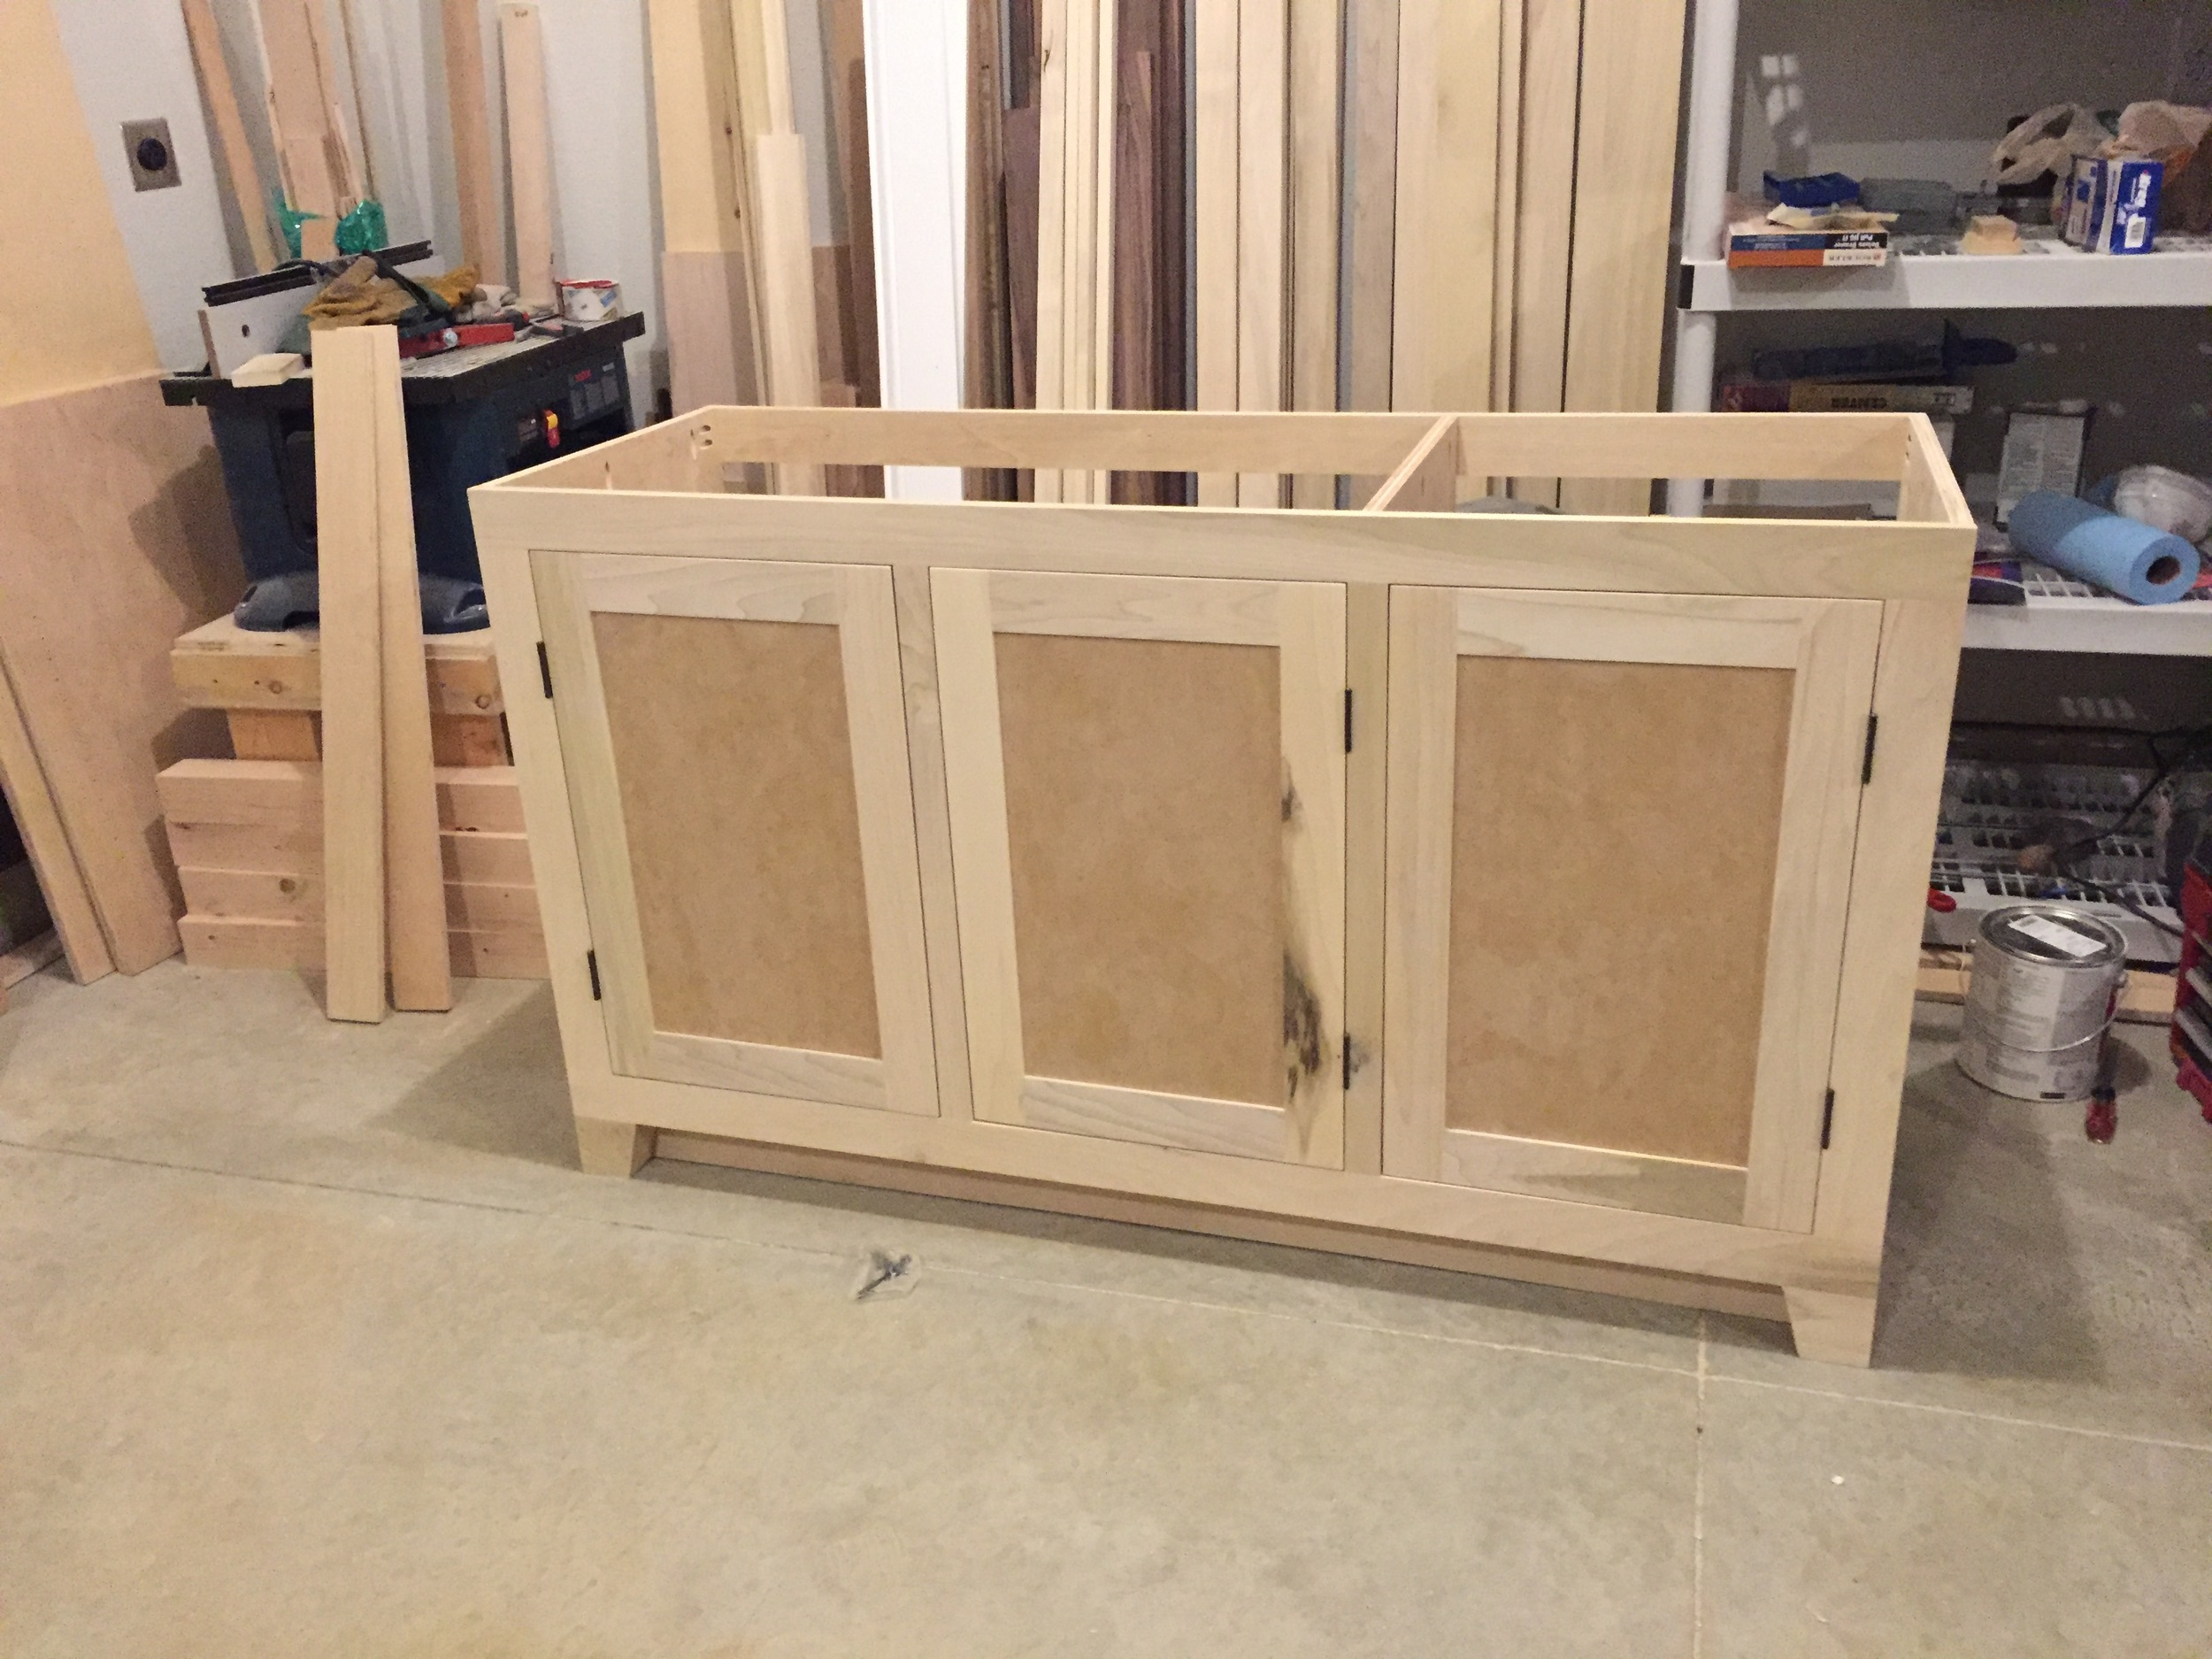 Shaker doors are attached and fitted.